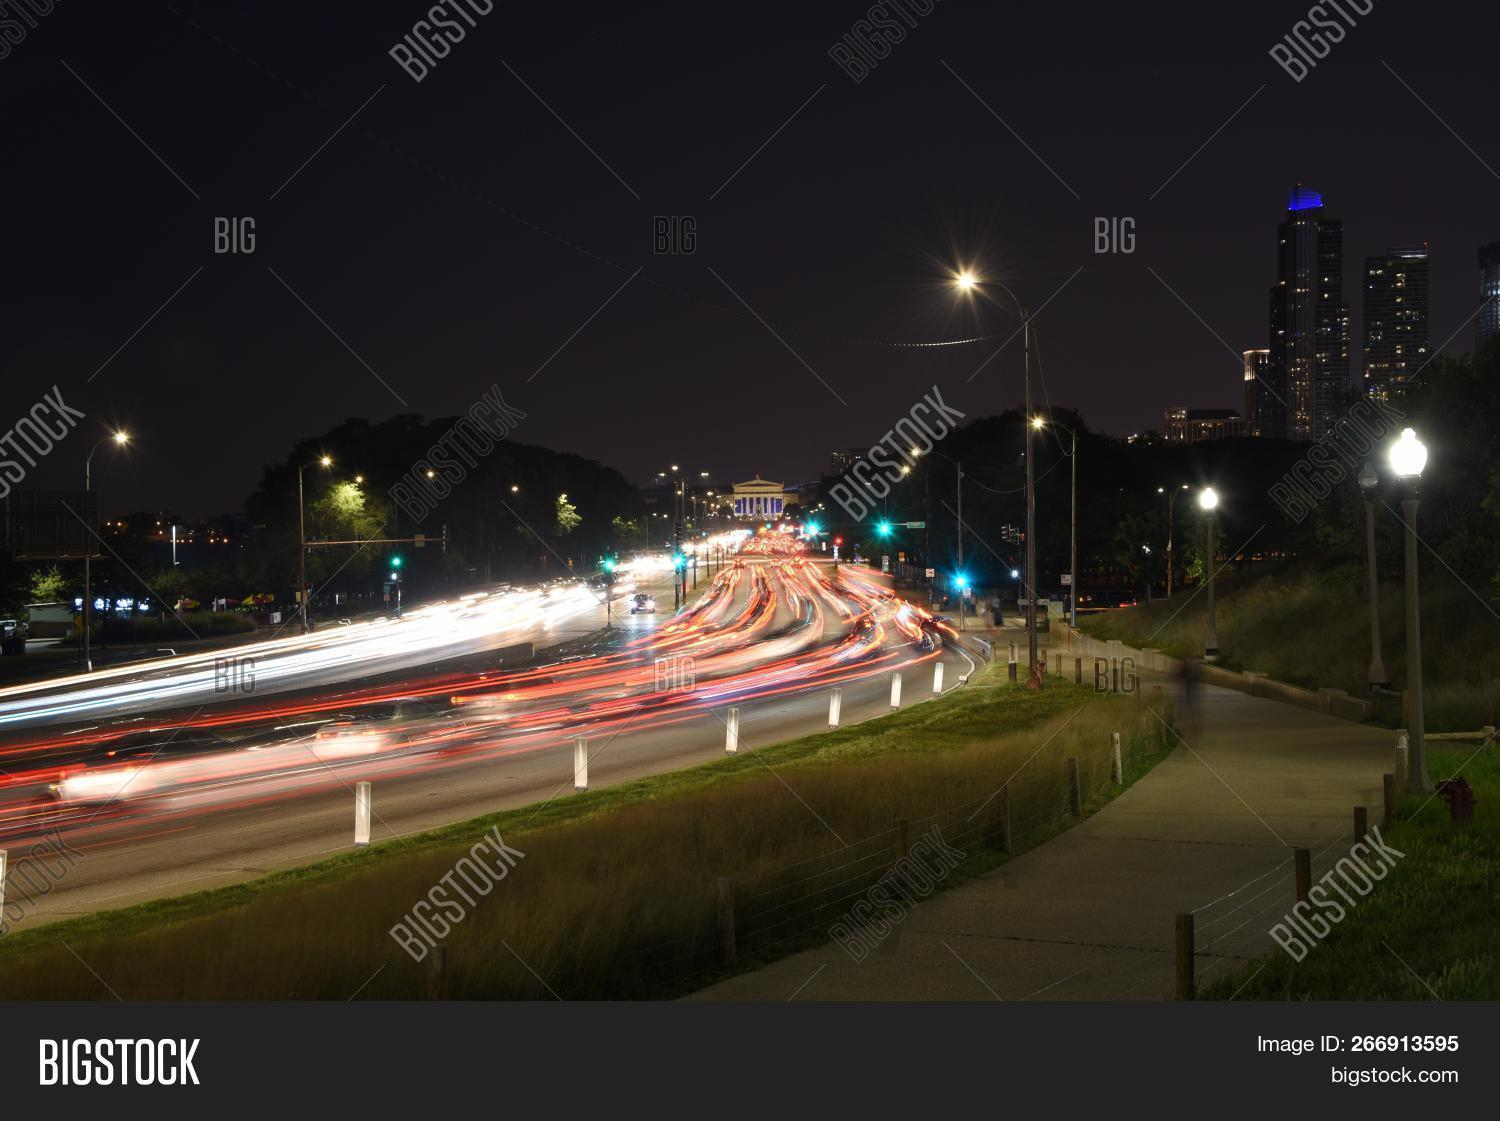 Cars Red White Trails Image Photo Free Trial Bigstock